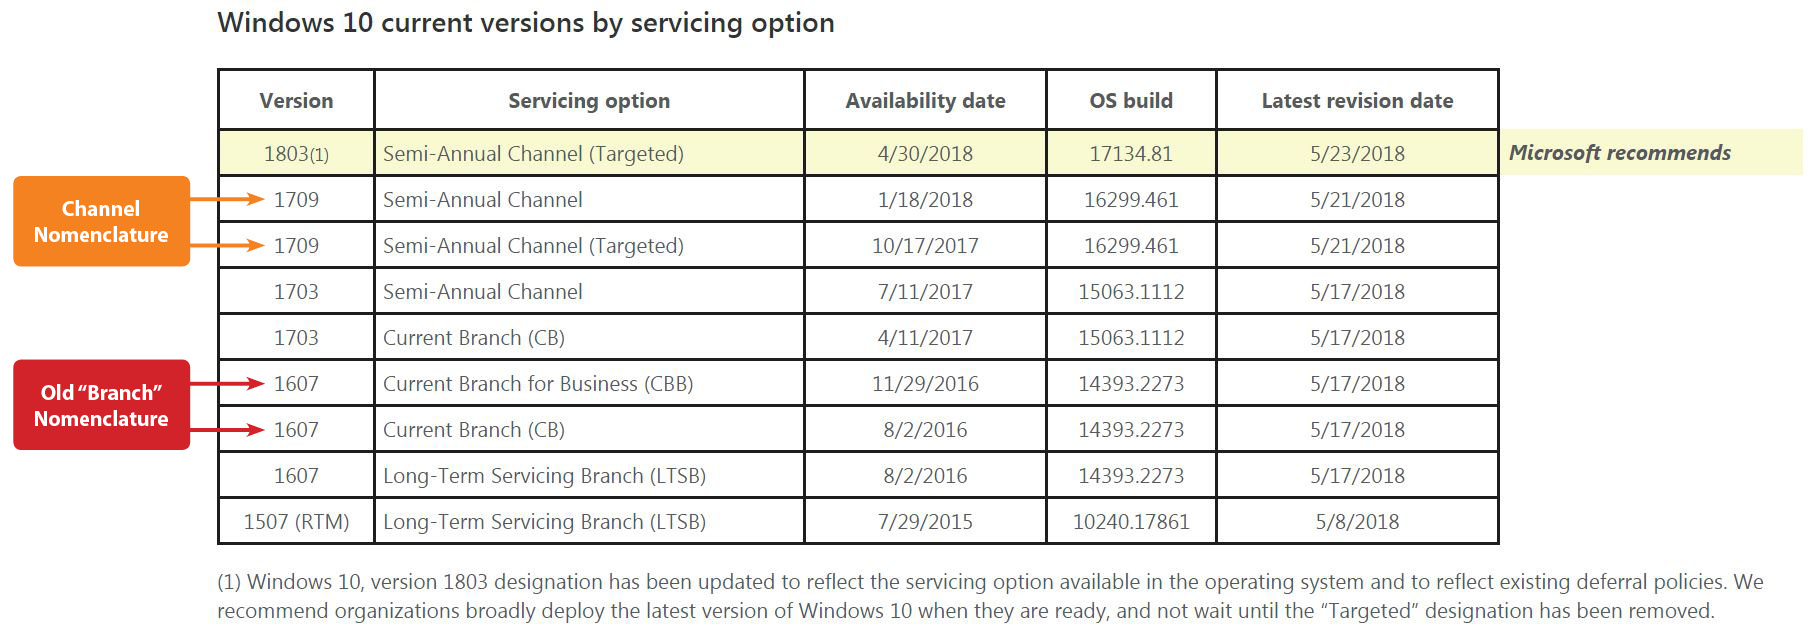 Microsoft Planning to Drop Windows 10 'Targeted' Update Lingo